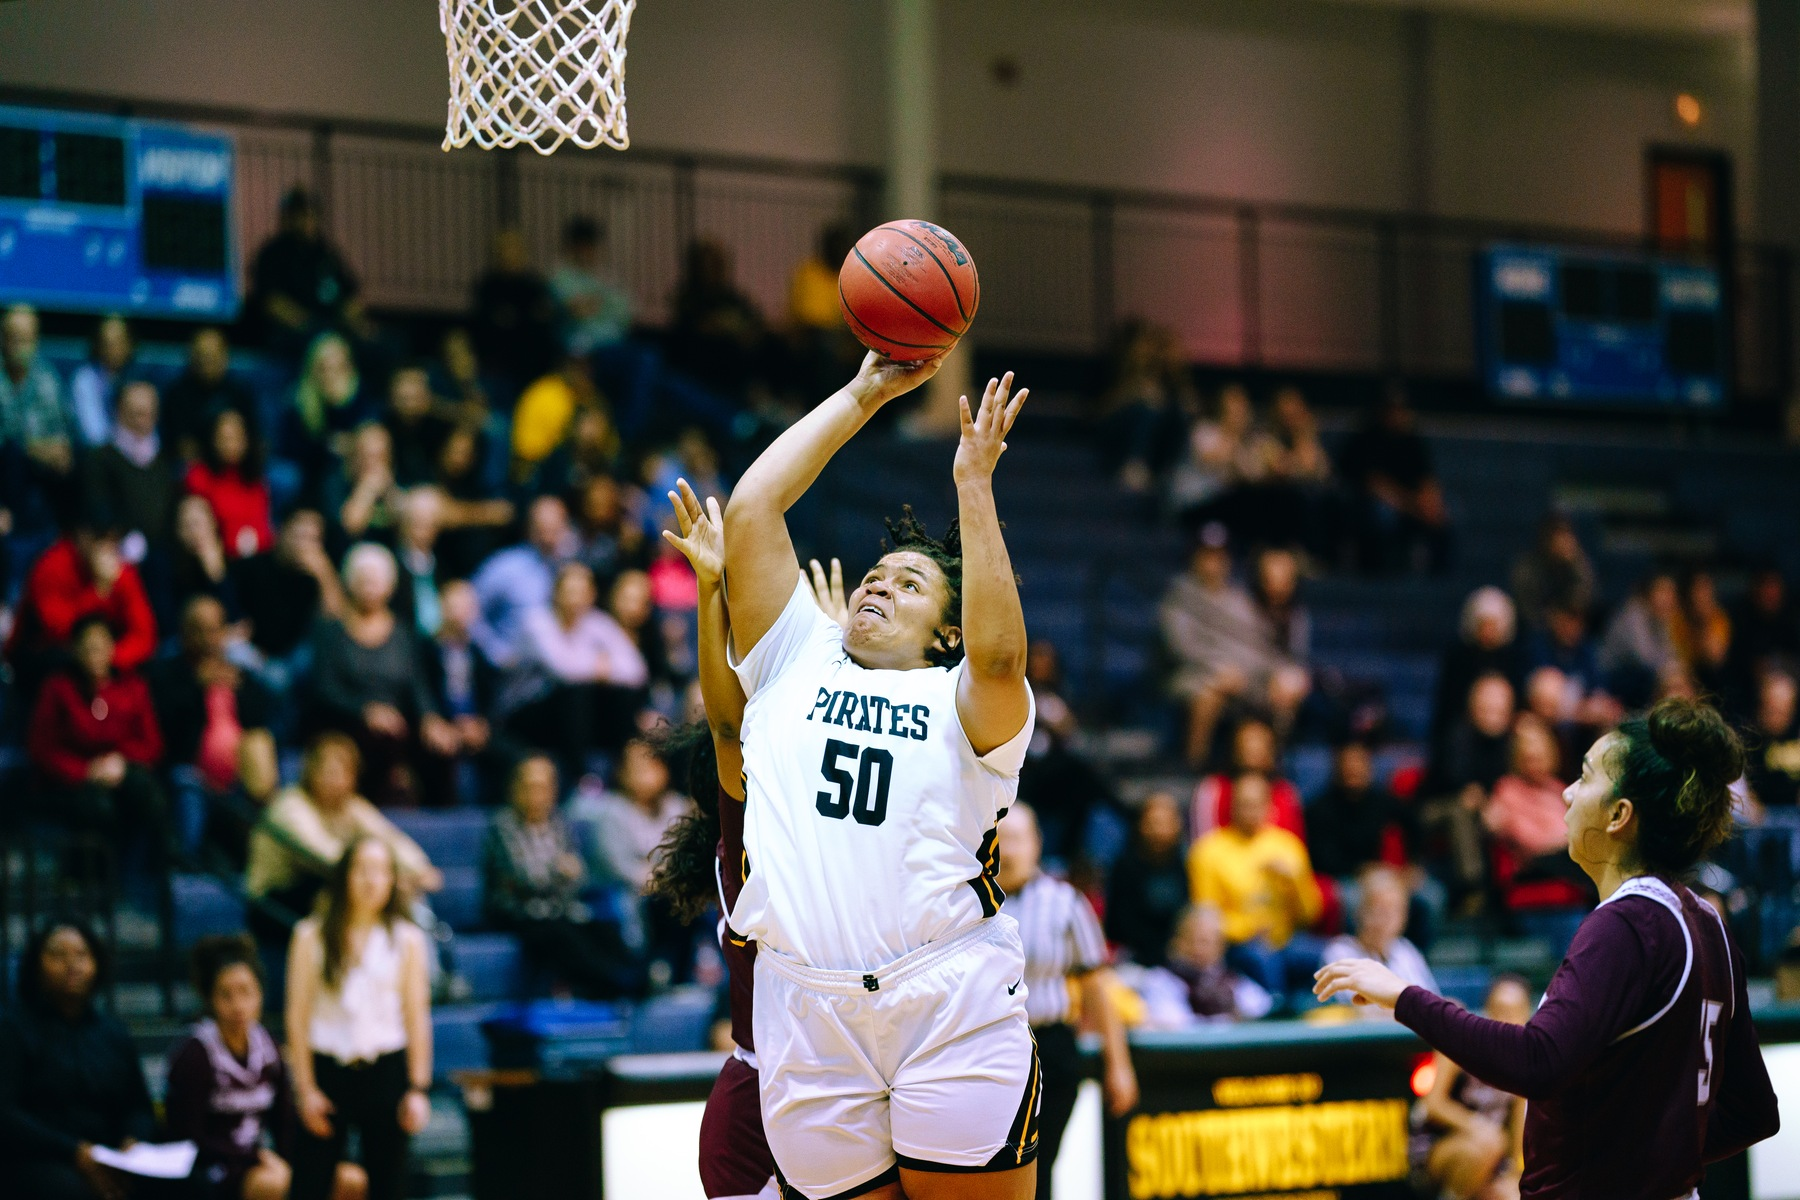 Women's Basketball Loses On The Road To Centenary